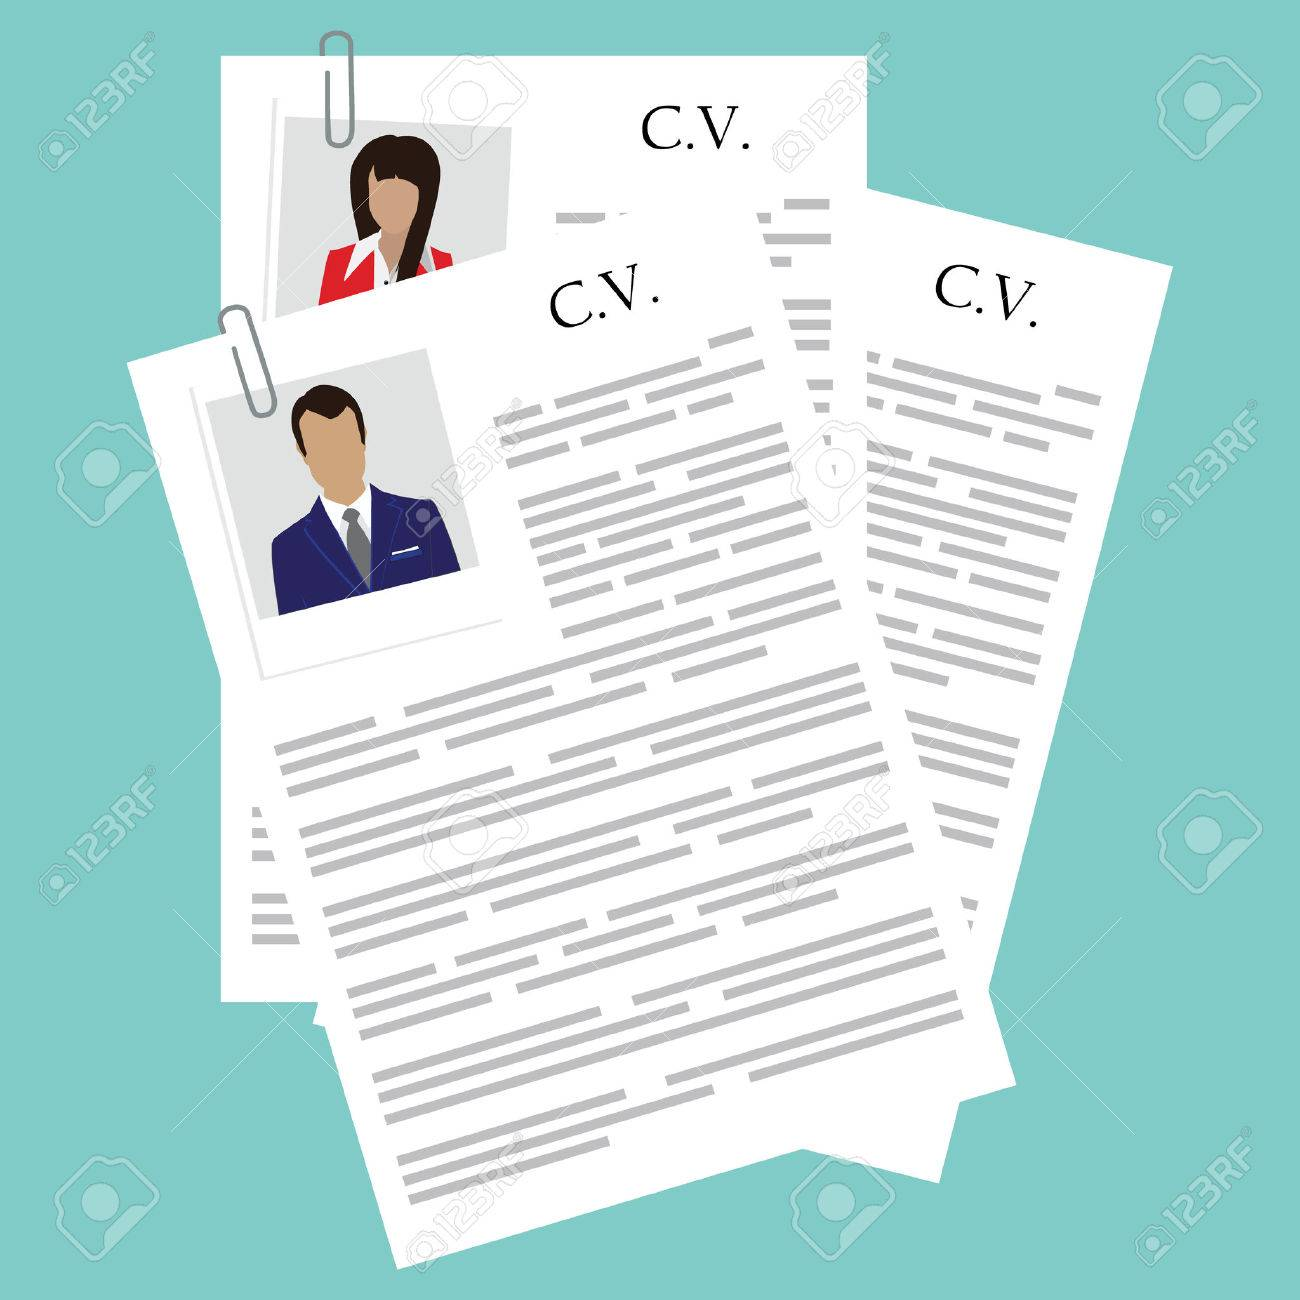 vector illustration curriculum vitae with woman and man polaroid